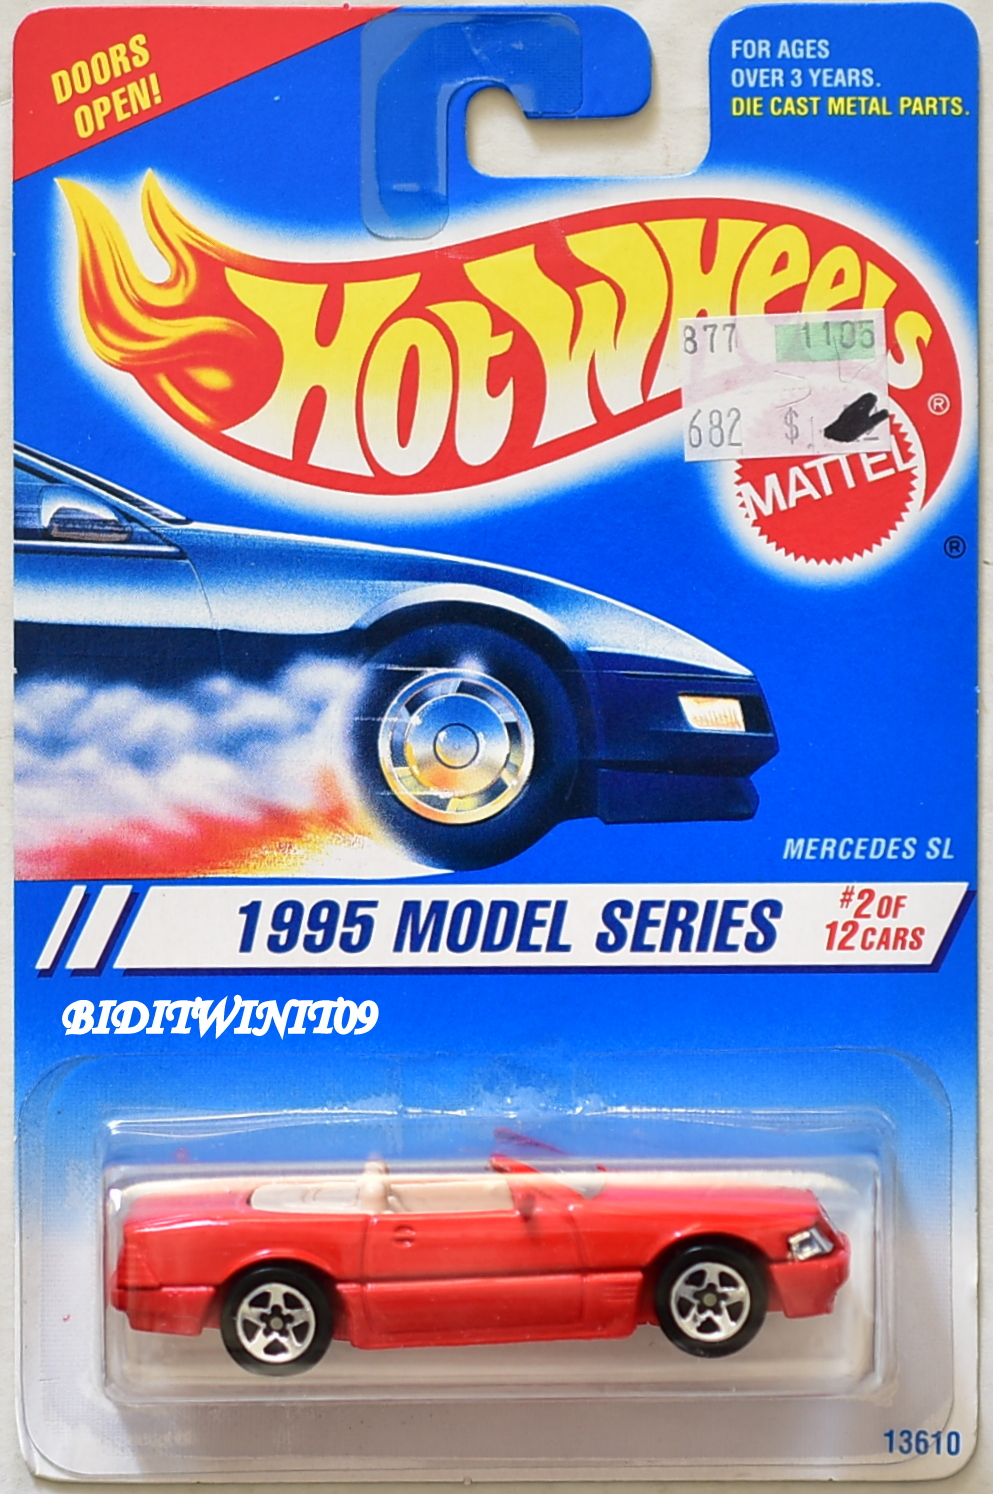 HOT WHEELS 1995 MODEL SERIES MERCEDES SL #2/12 RED